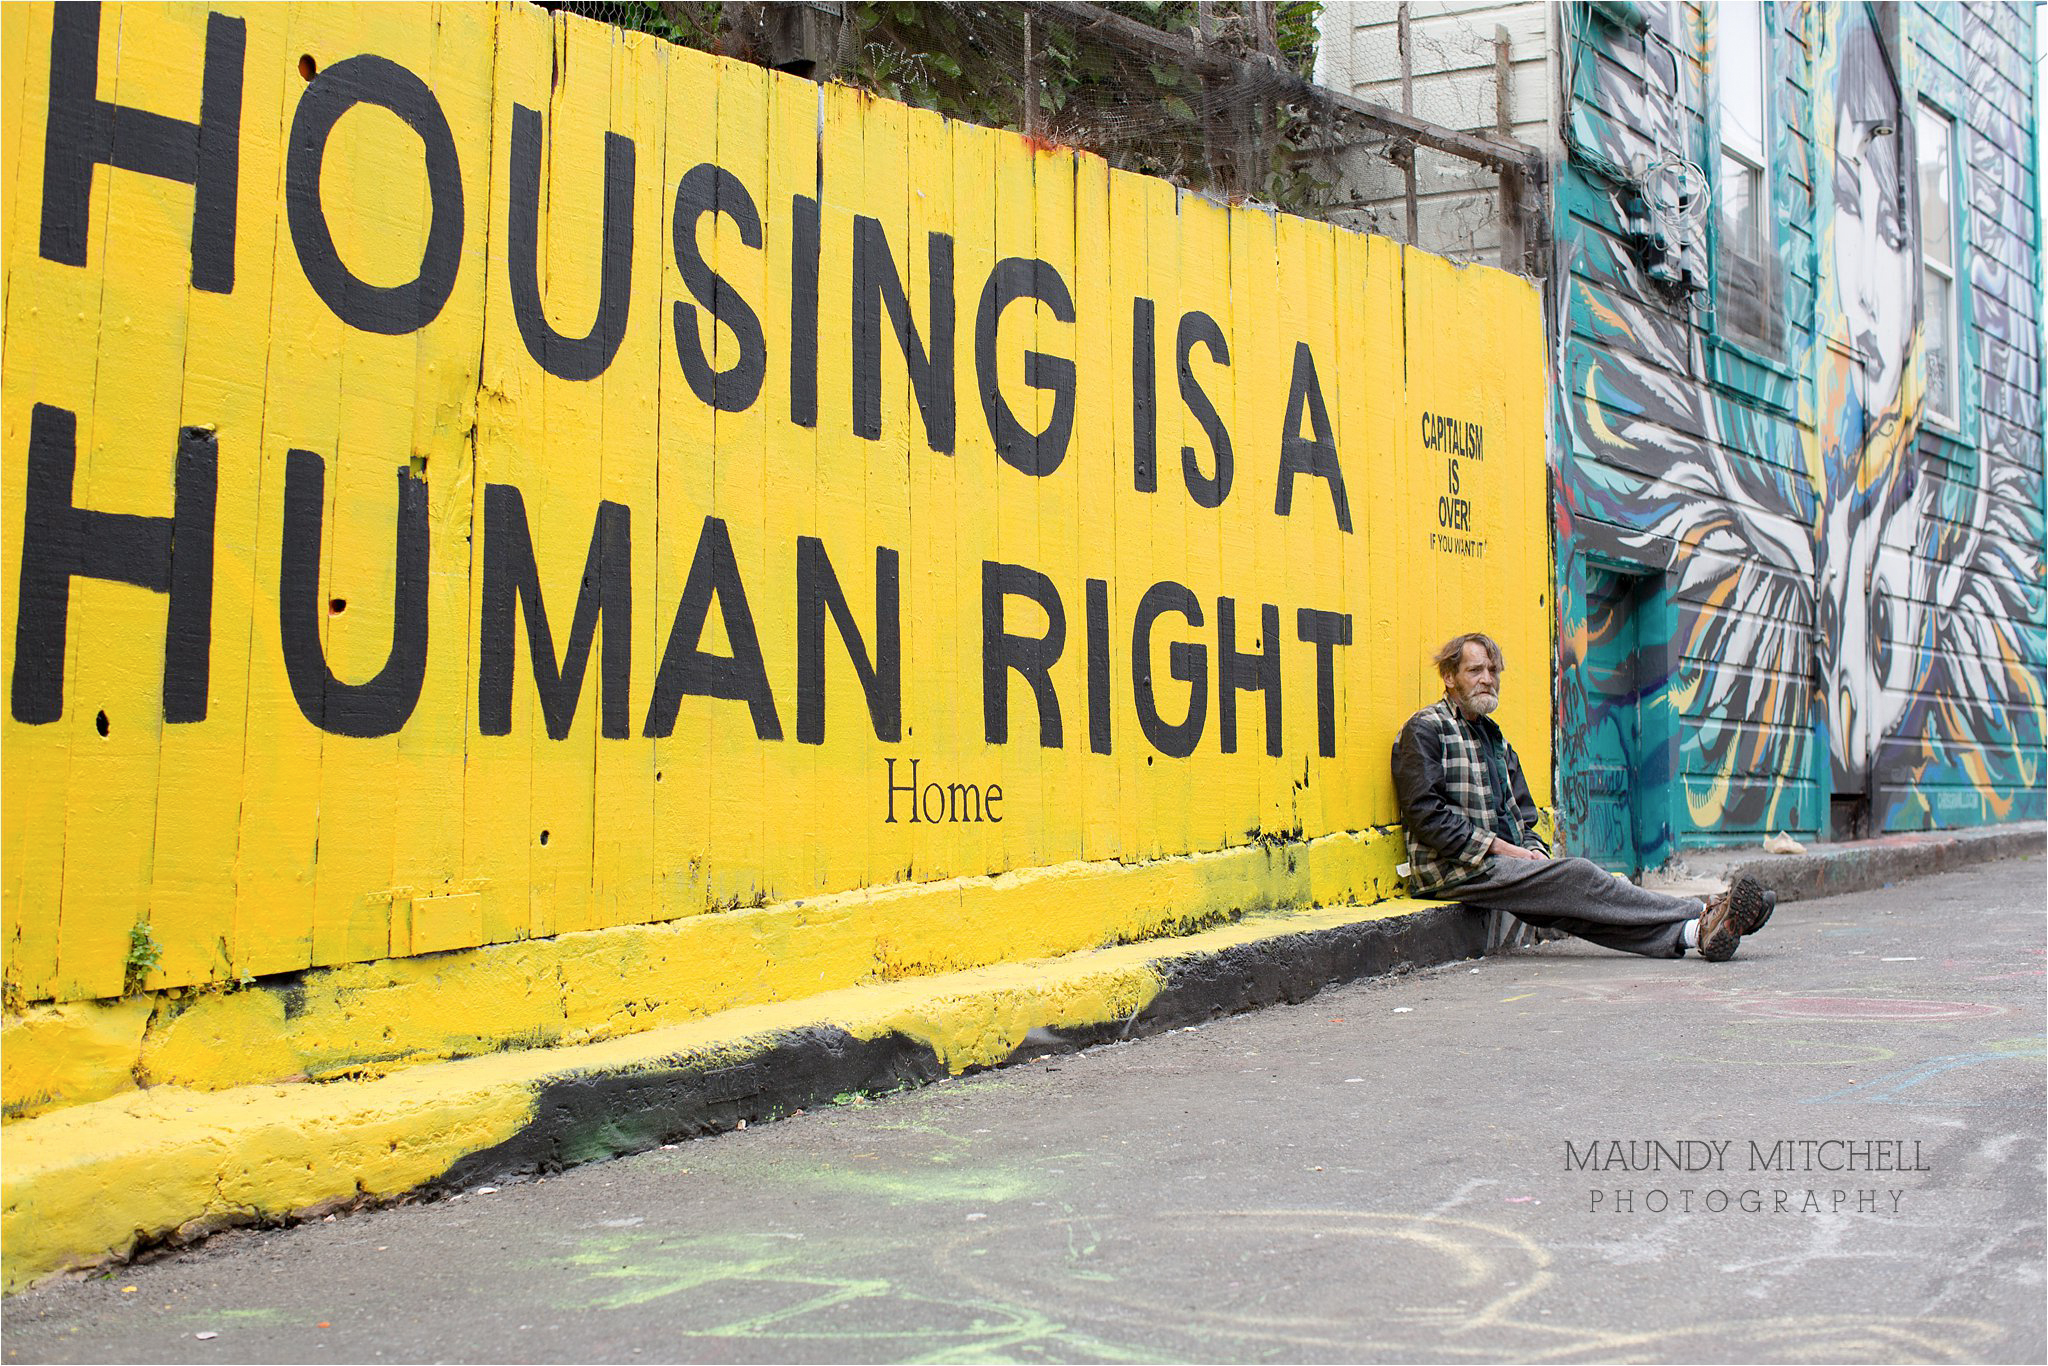 Homeless Man Sitting by Human Rights Mural